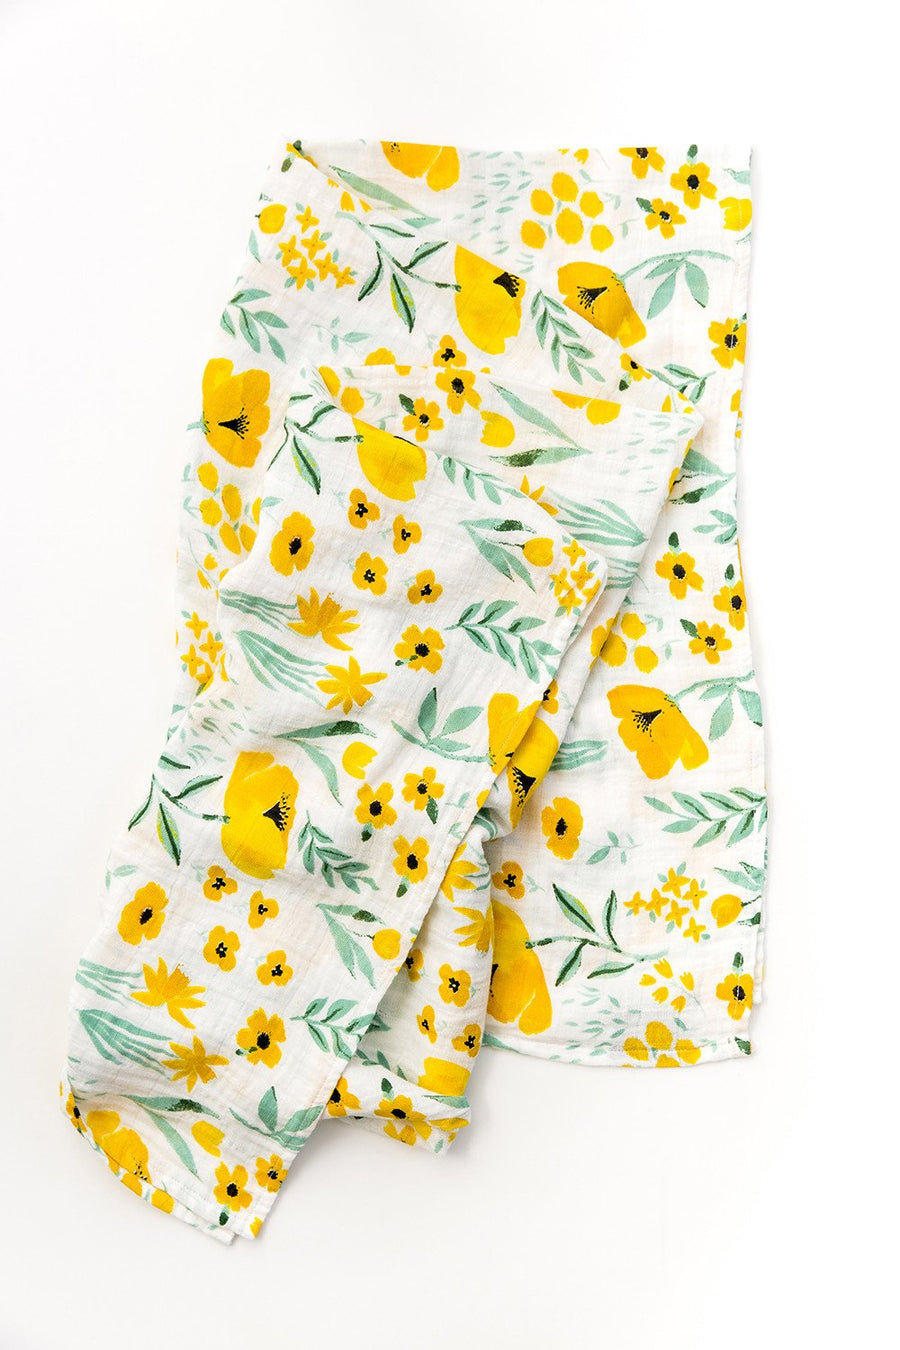 Buttercup Blossom Swaddle, swaddle - Tnee's